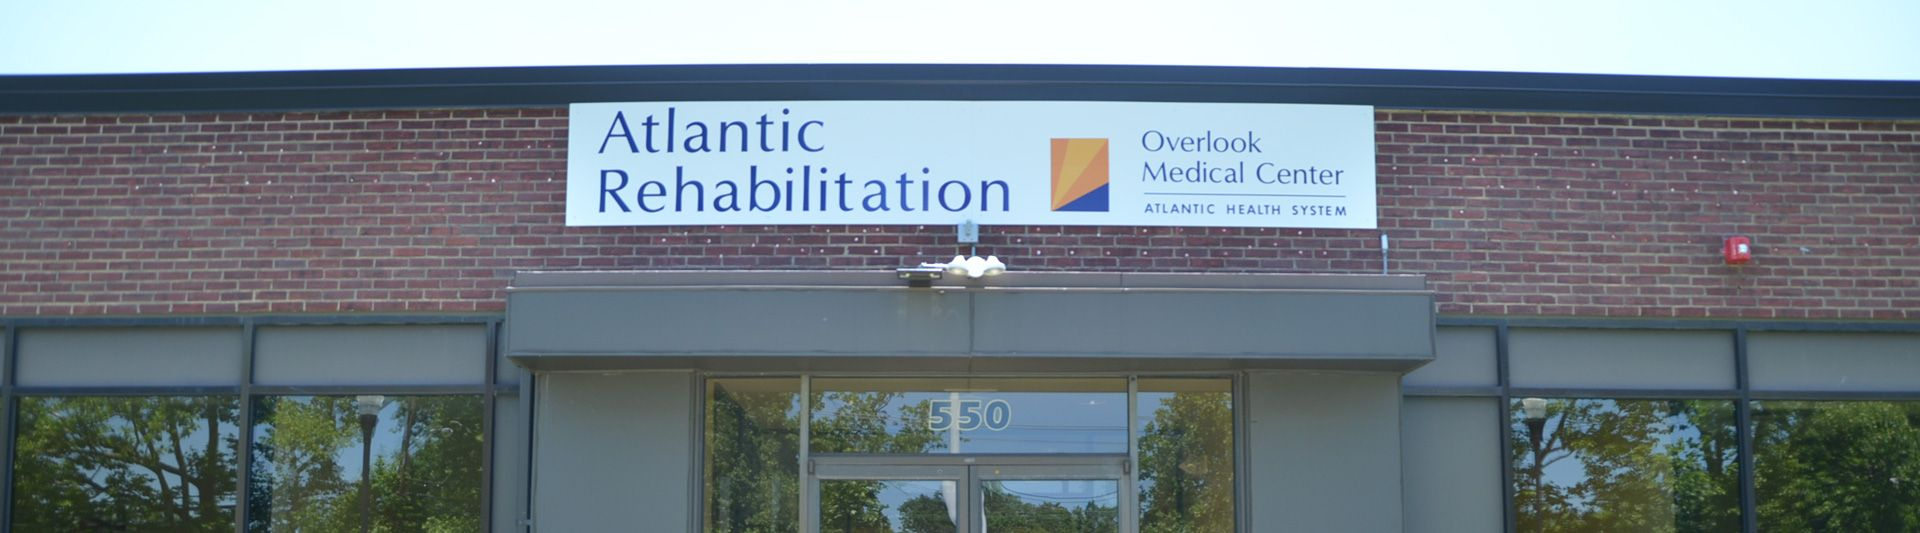 Atlantic Rehabilitation